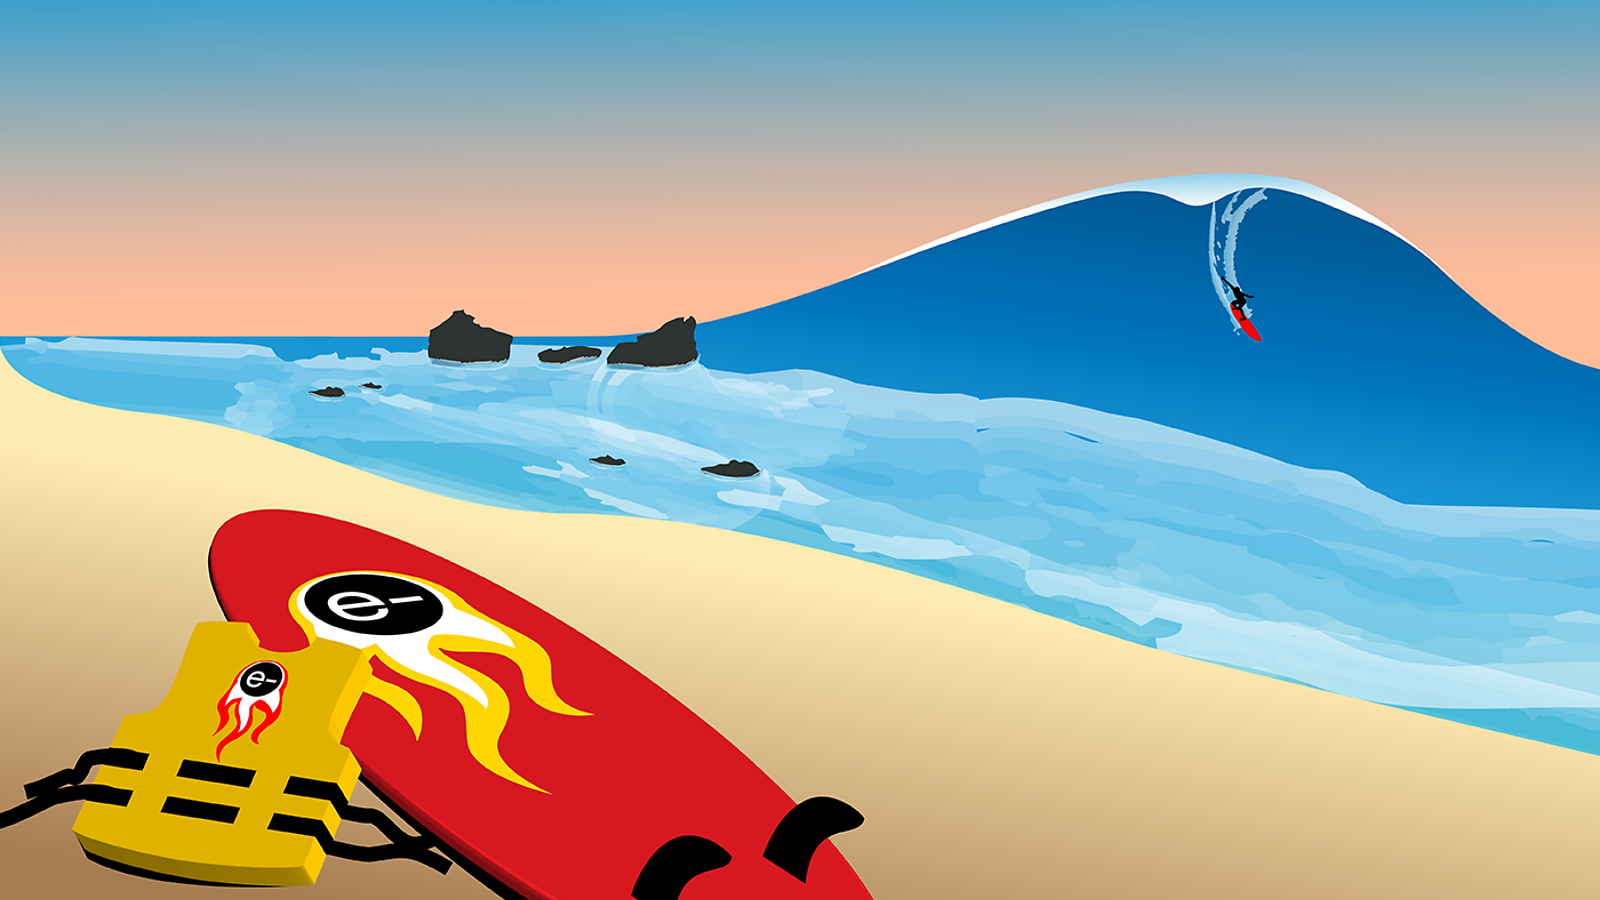 Illustration of beach with surf board, life vest, and person surfing on large blue wave in background